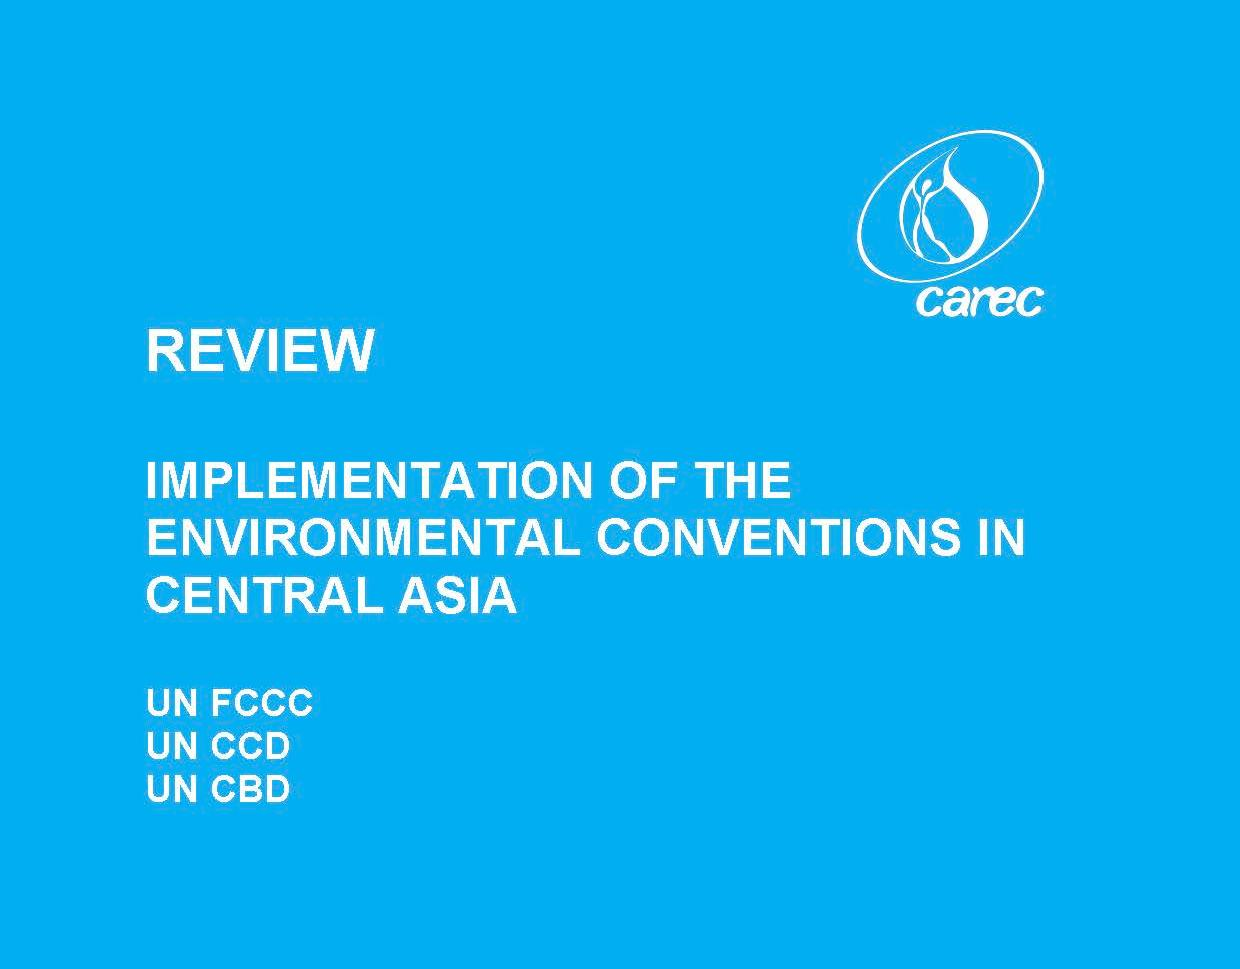 Review of implementation of the international environmental conventions in Central Asia